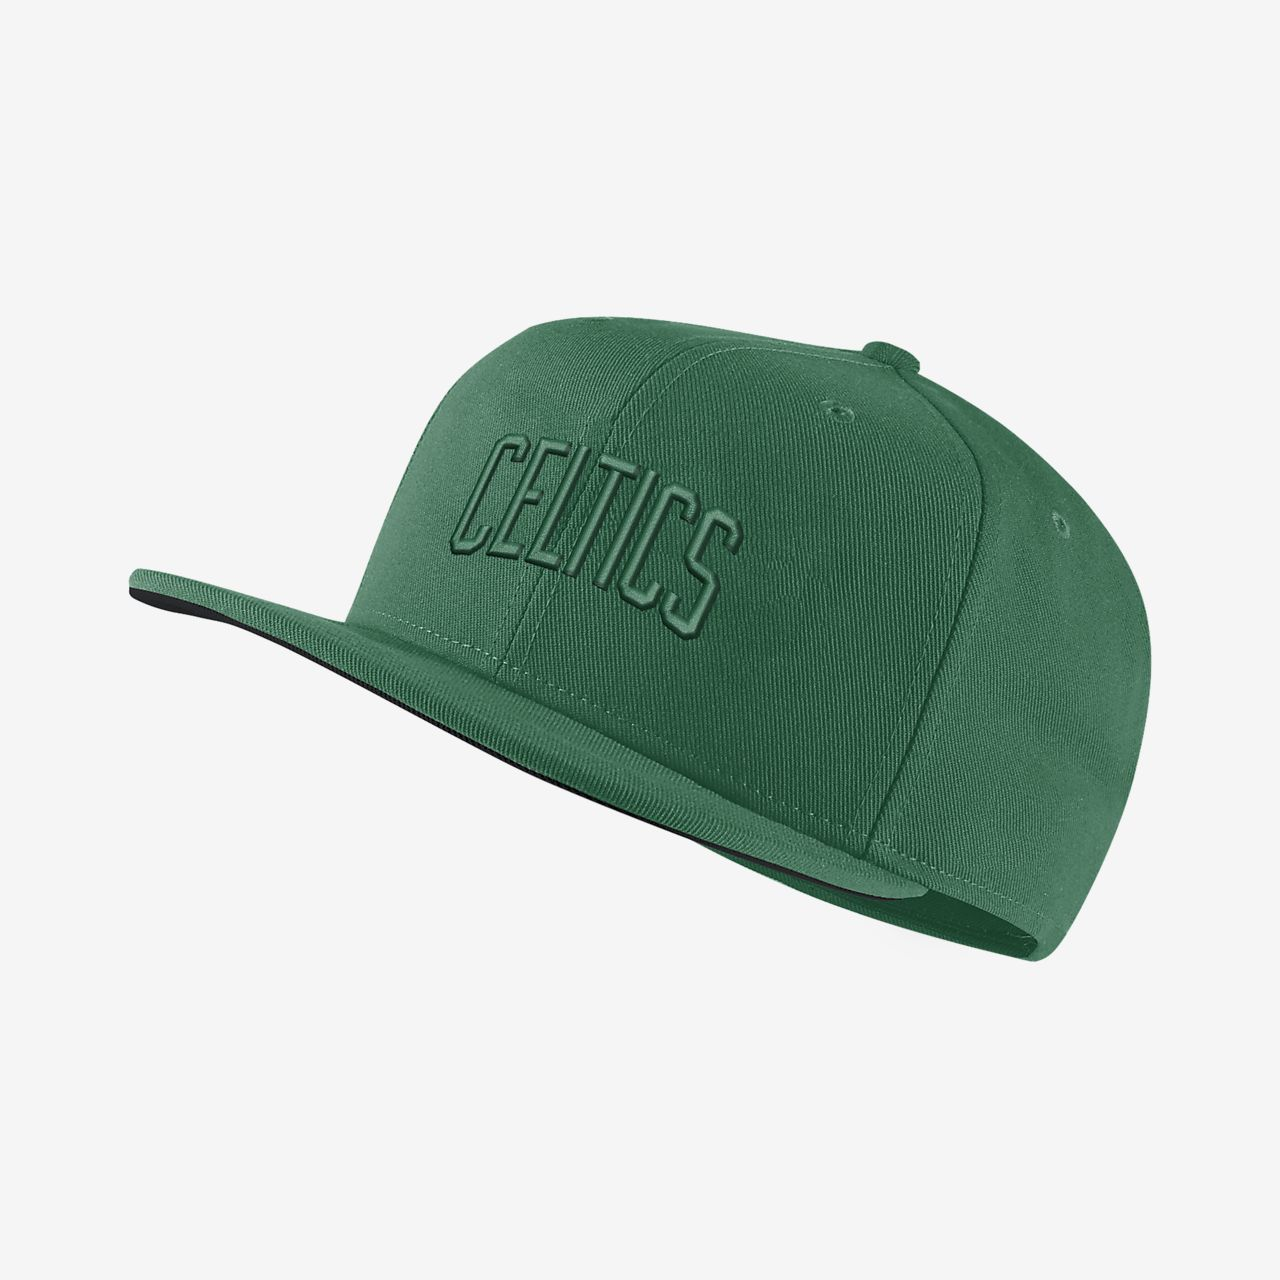 Casquette NBA Boston Celtics Nike AeroBill